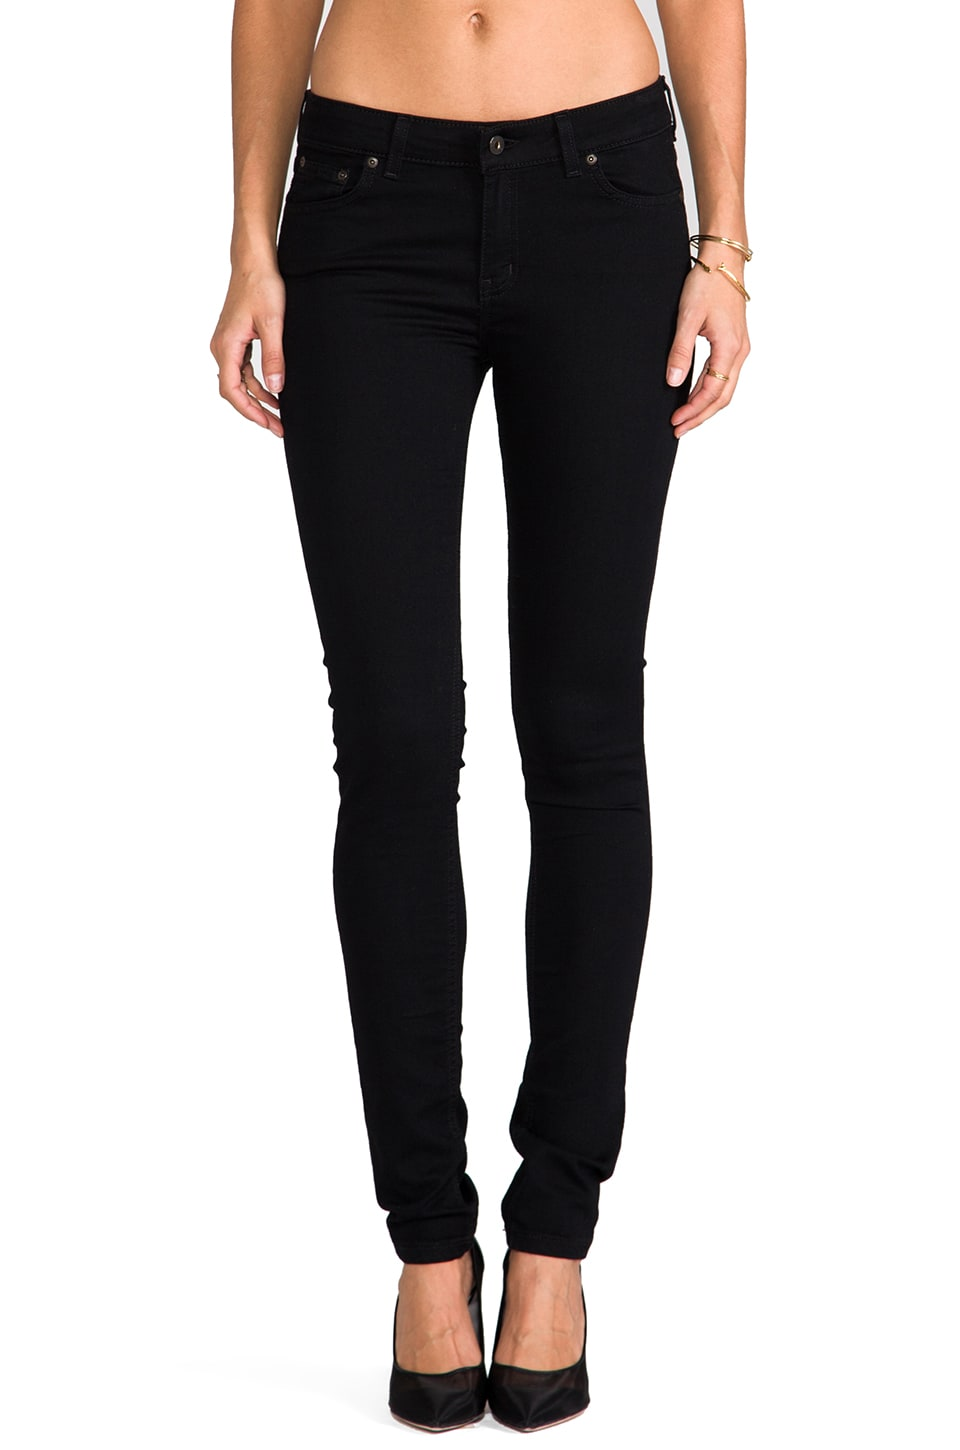 Naked & Famous Denim The Skinny in Lightweight Black Super Stretch